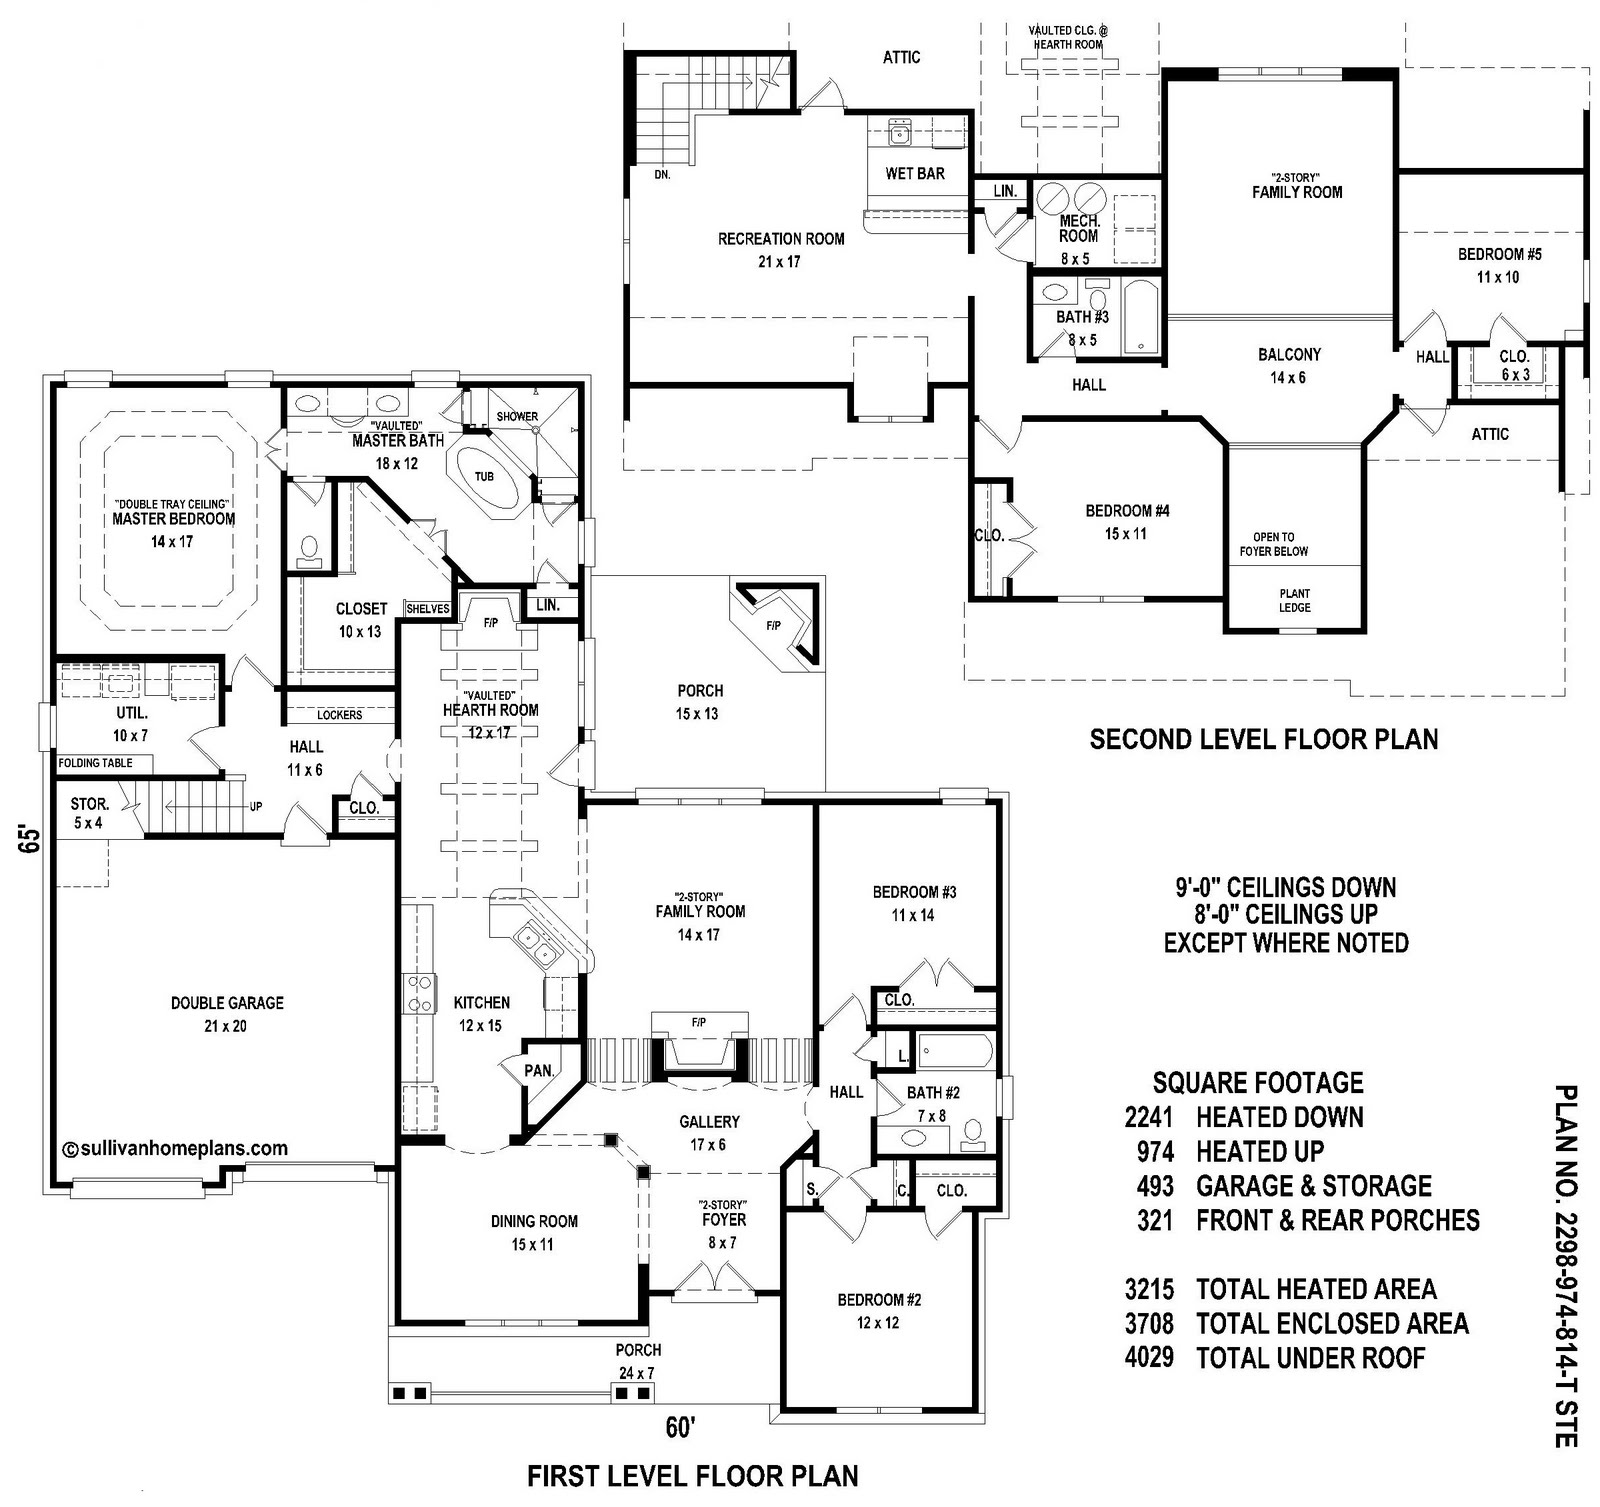 Sullivan home plans june 2010 for 5 bedroom house layout